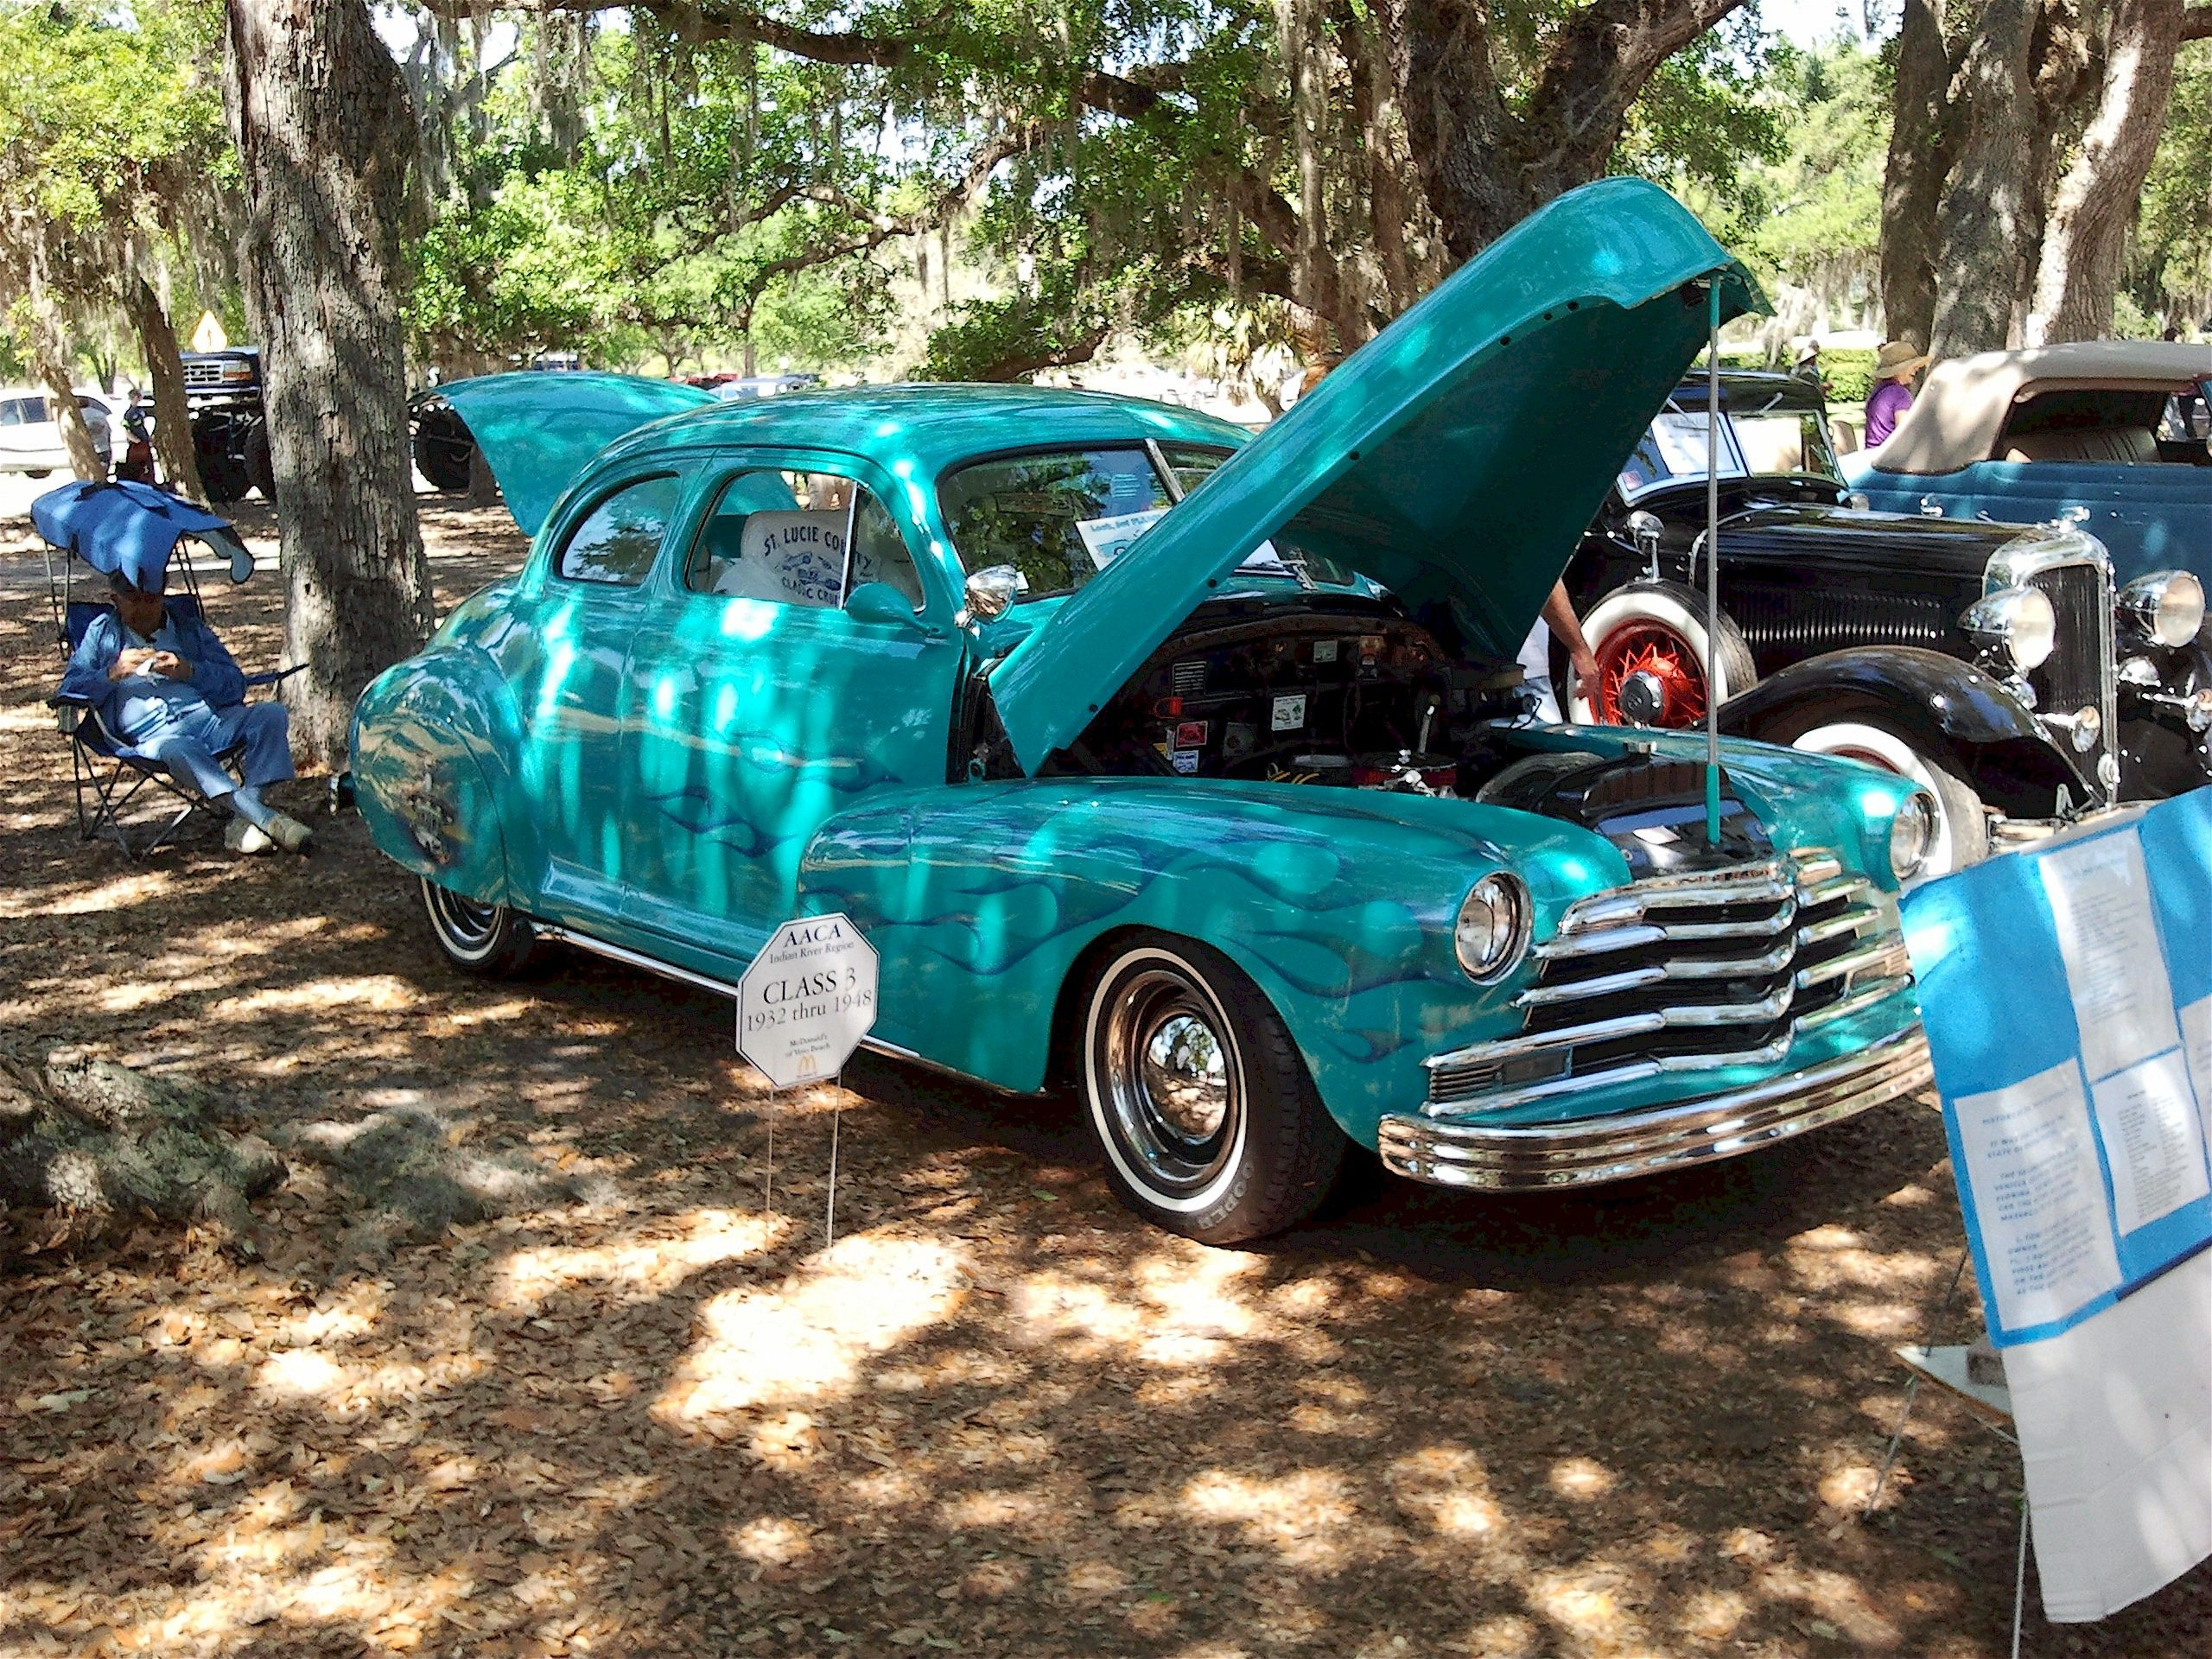 Chevy Great Paint Job Vero Beach Car Show Pinterest Vero - Vero beach car show